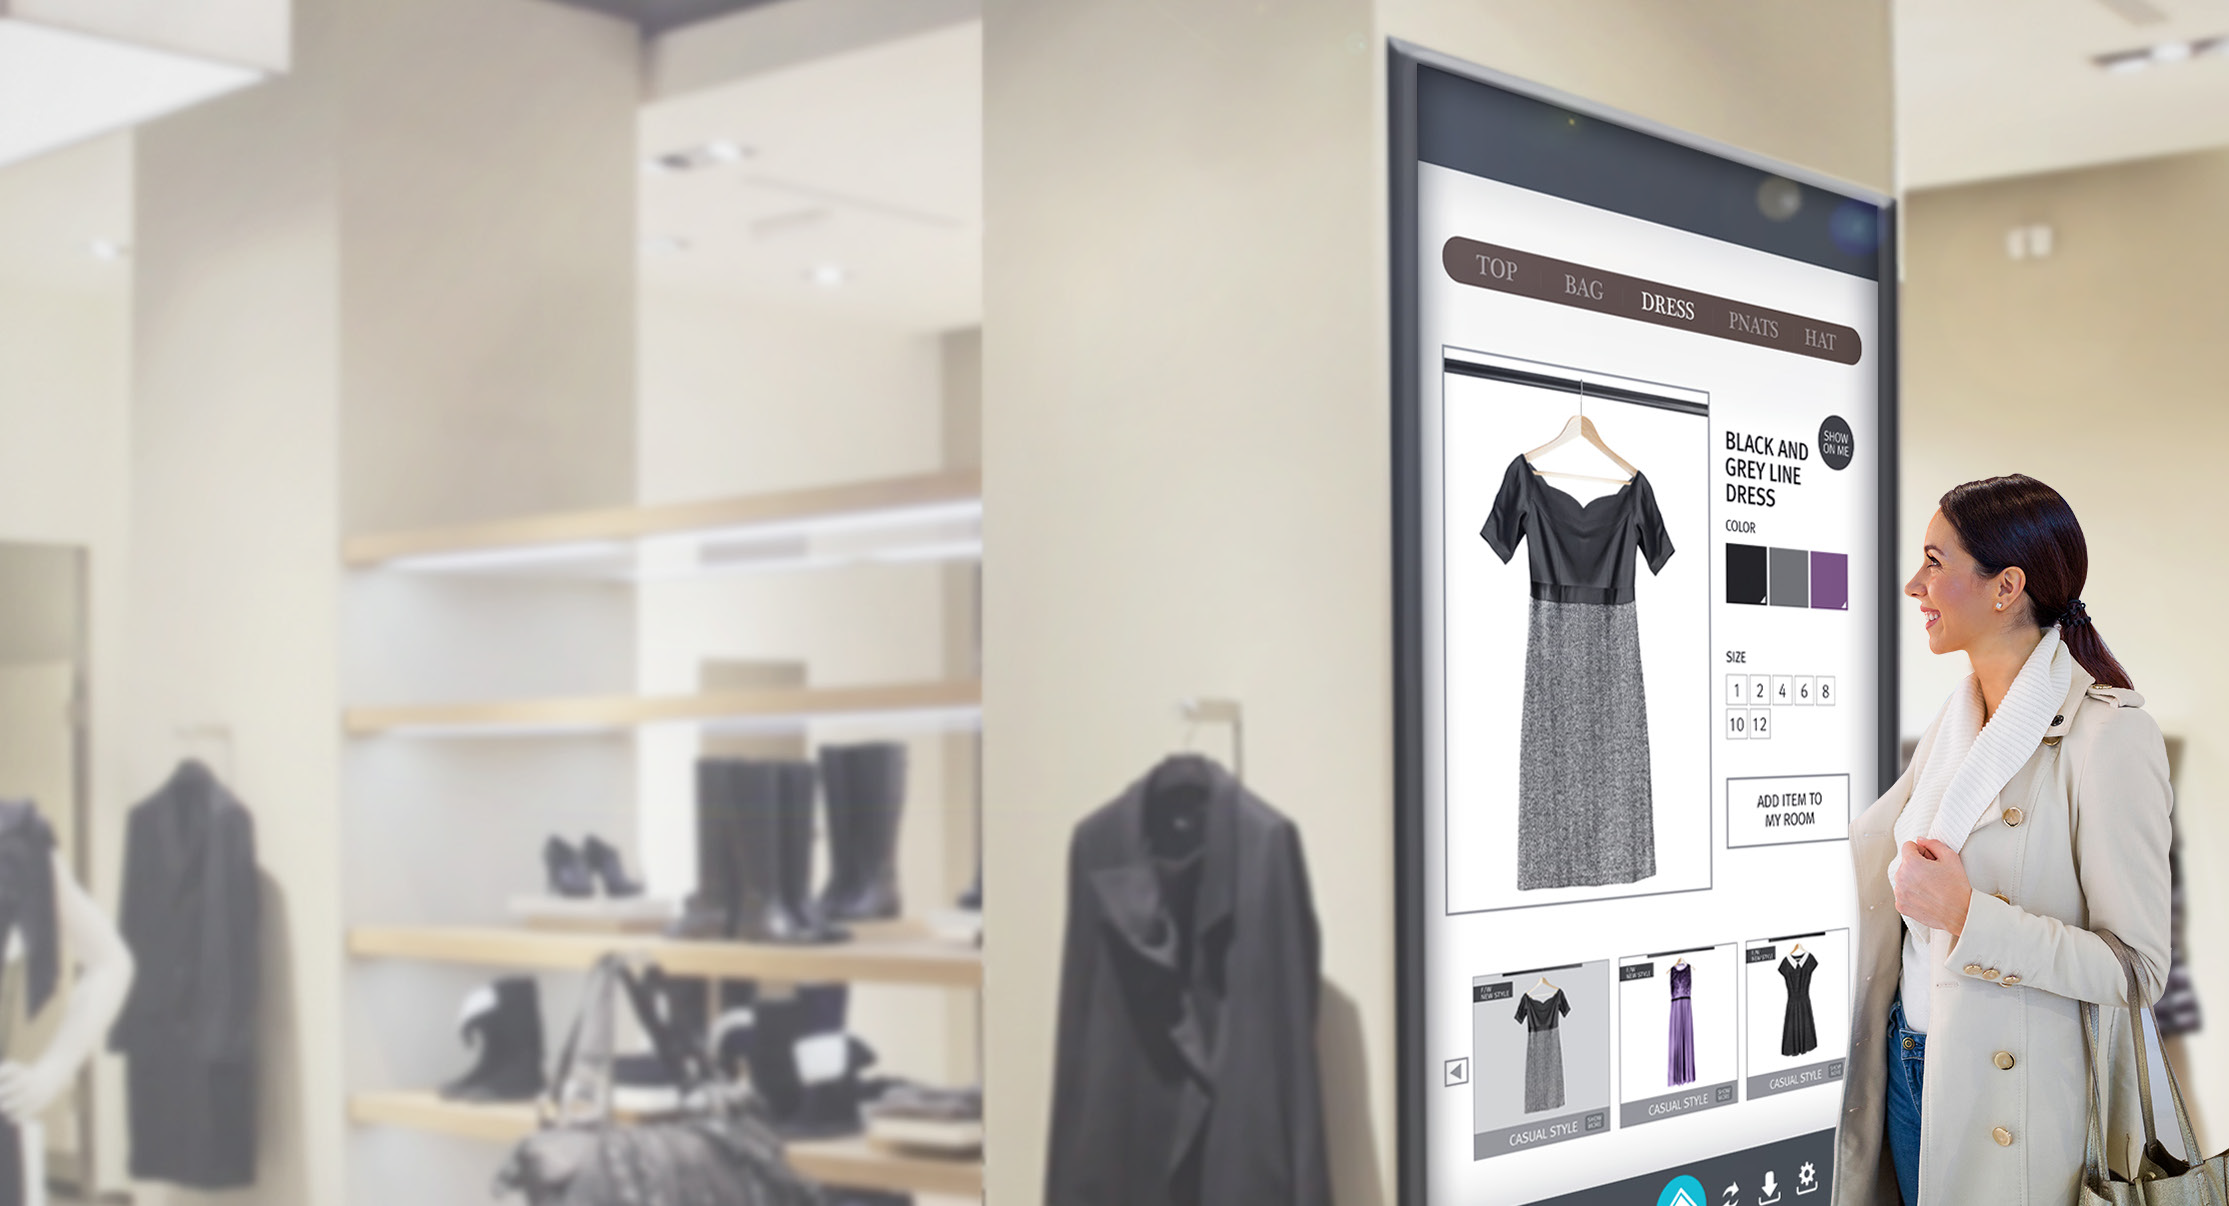 Is interactive digital signage more than just trendy ads?